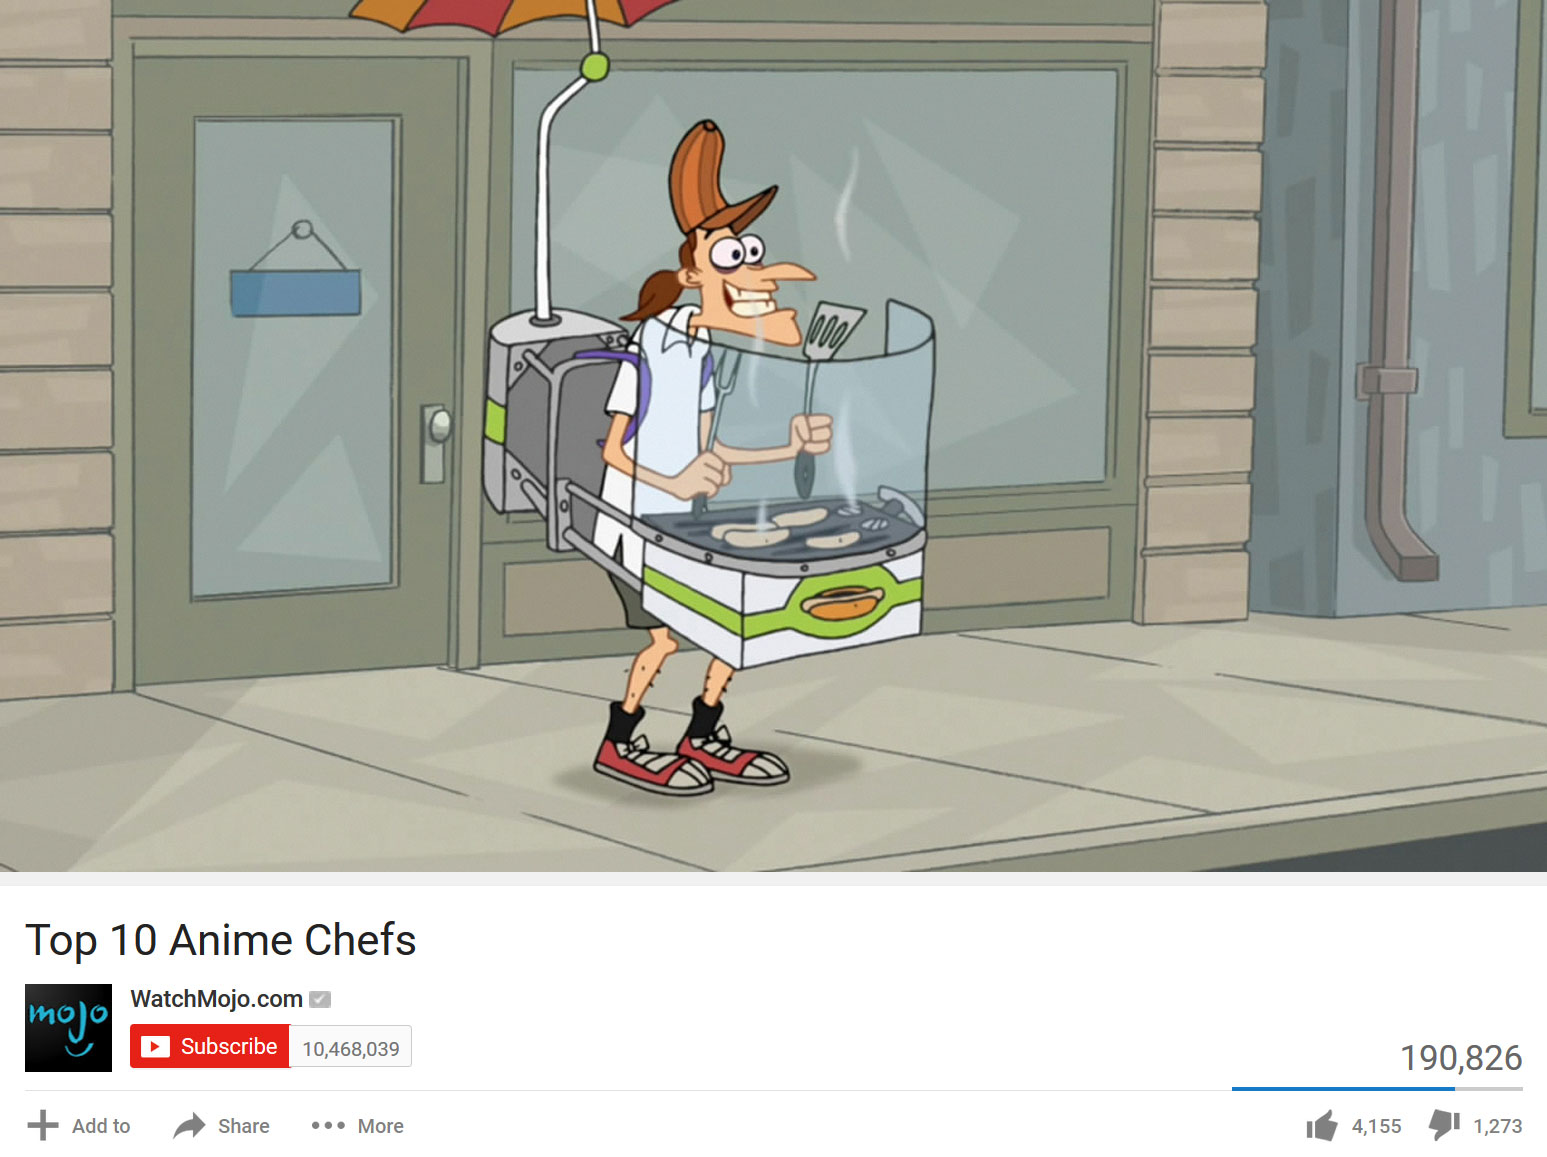 Top 10 anime chefs watchmojo com subscribe mojo 10468039 190826 add to share more 4155